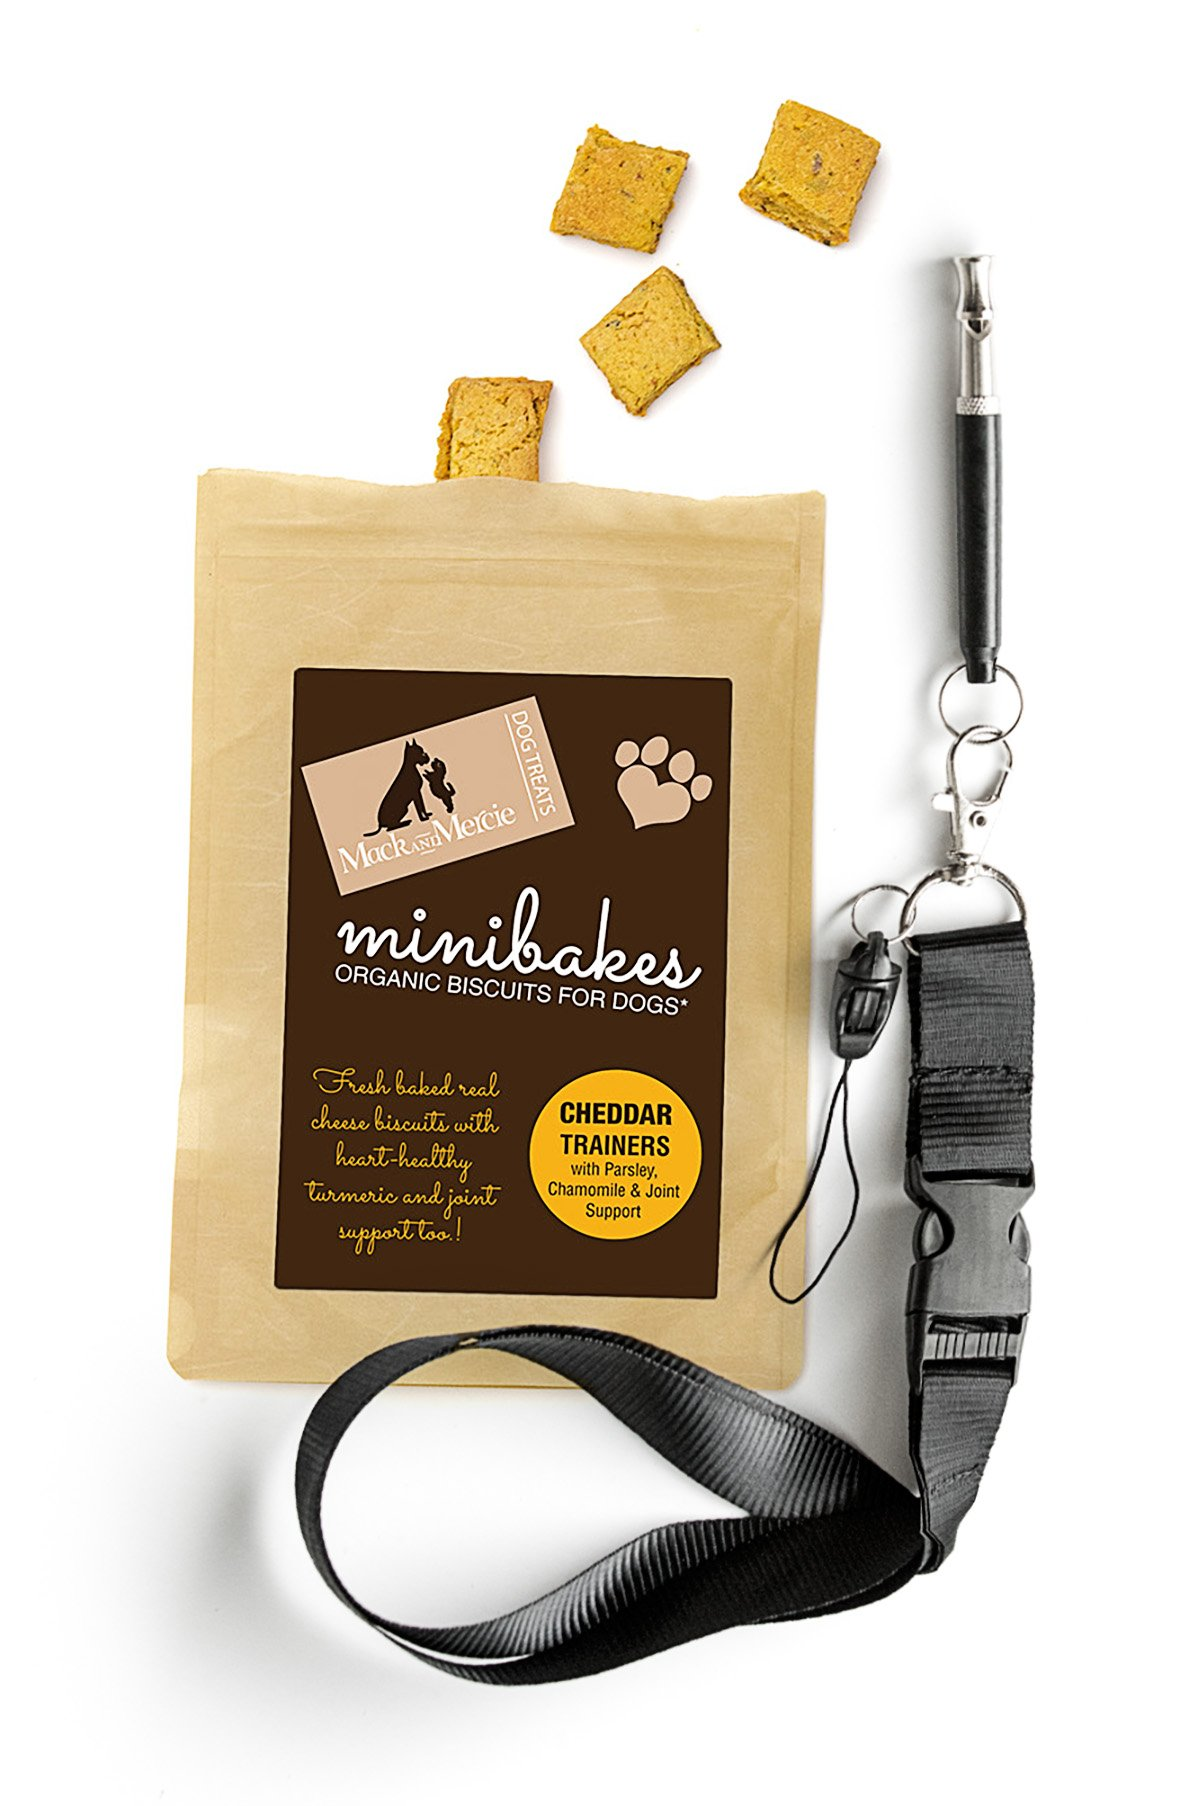 Mack and Mercie Dog Training Whistle Organic Dog Trainer Treats, Cheddar Easy to Teach